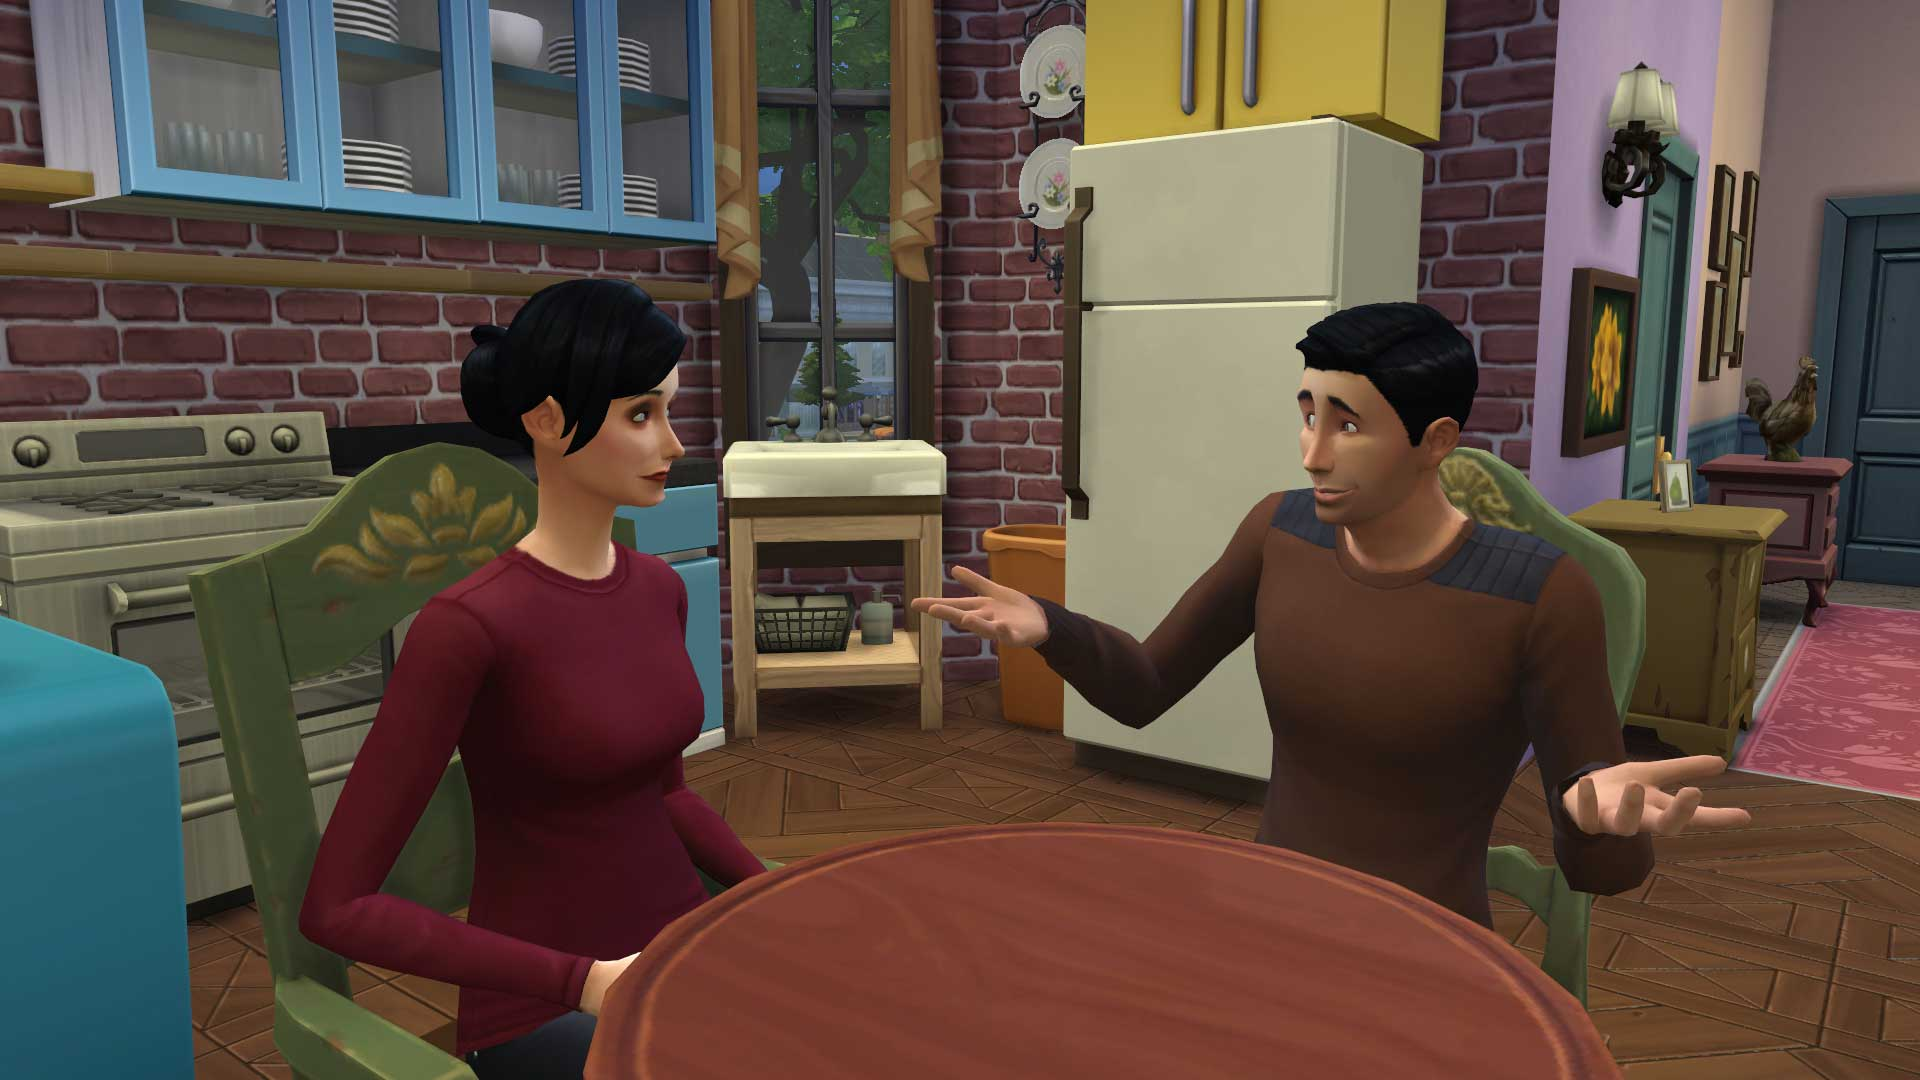 Check Out Friends And Seinfeld Recreated In The Sims 4 - Vg247-1830